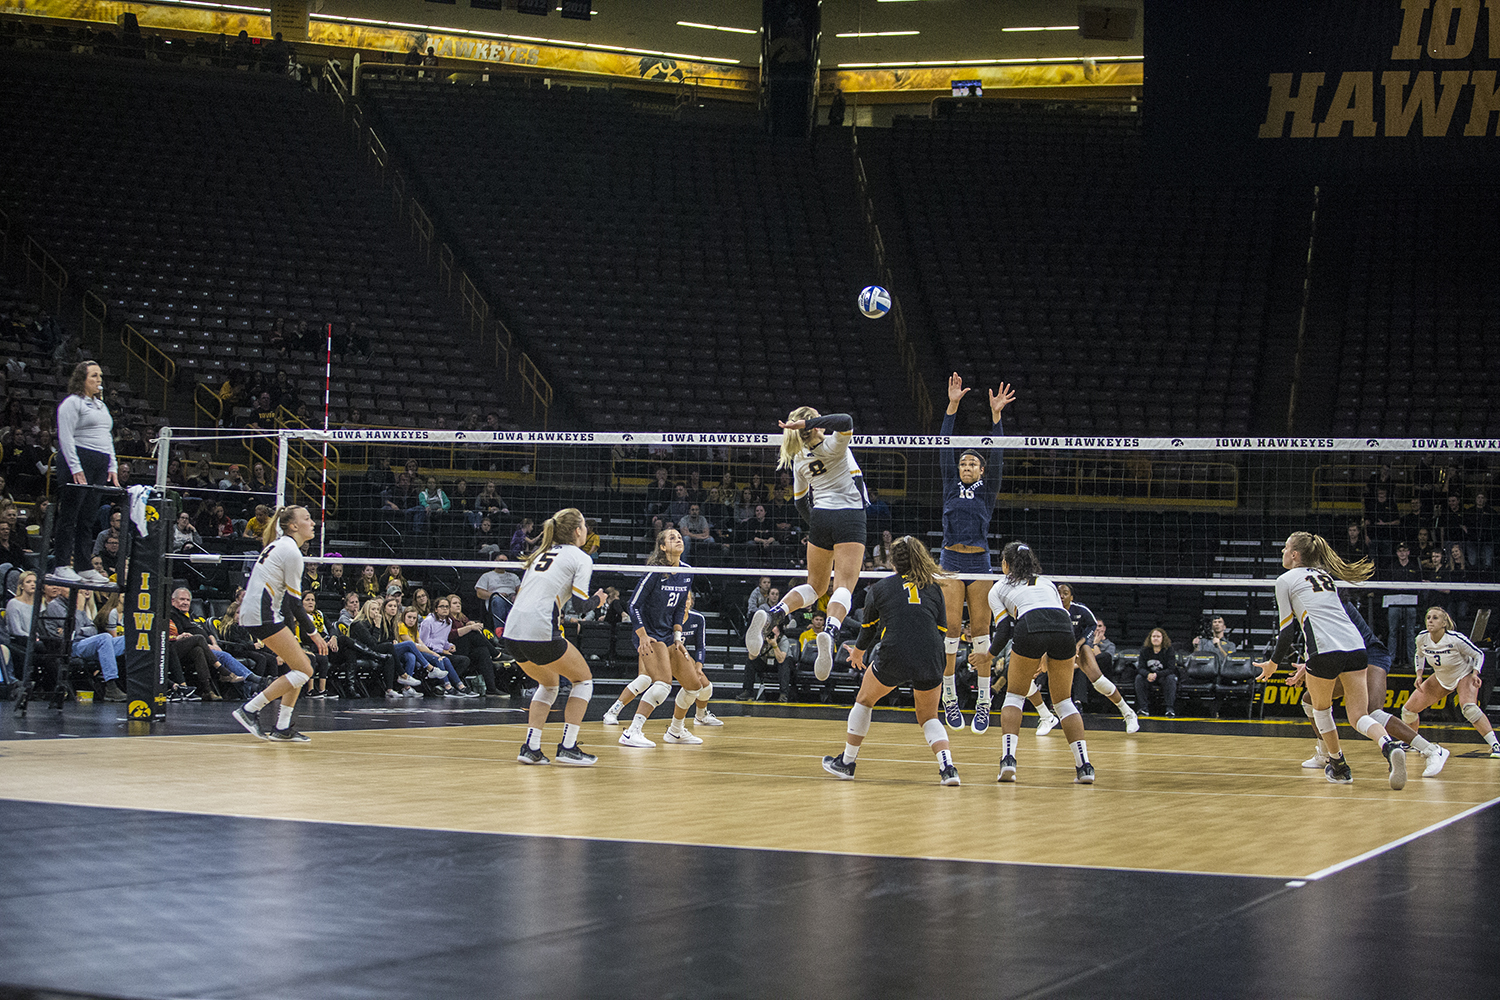 Iowa+senior+Reghan+Coyle+prepares+to+spike+the+ball+during+a+volleyball+match+between+Iowa+and+Penn+State+at+Carver-Hawkeye+Arena+on+Saturday%2C+Nov.+3%2C+2018.+The+Hawkeyes+were+shut+out+by+the+Nittany+Lions%2C+3-0.